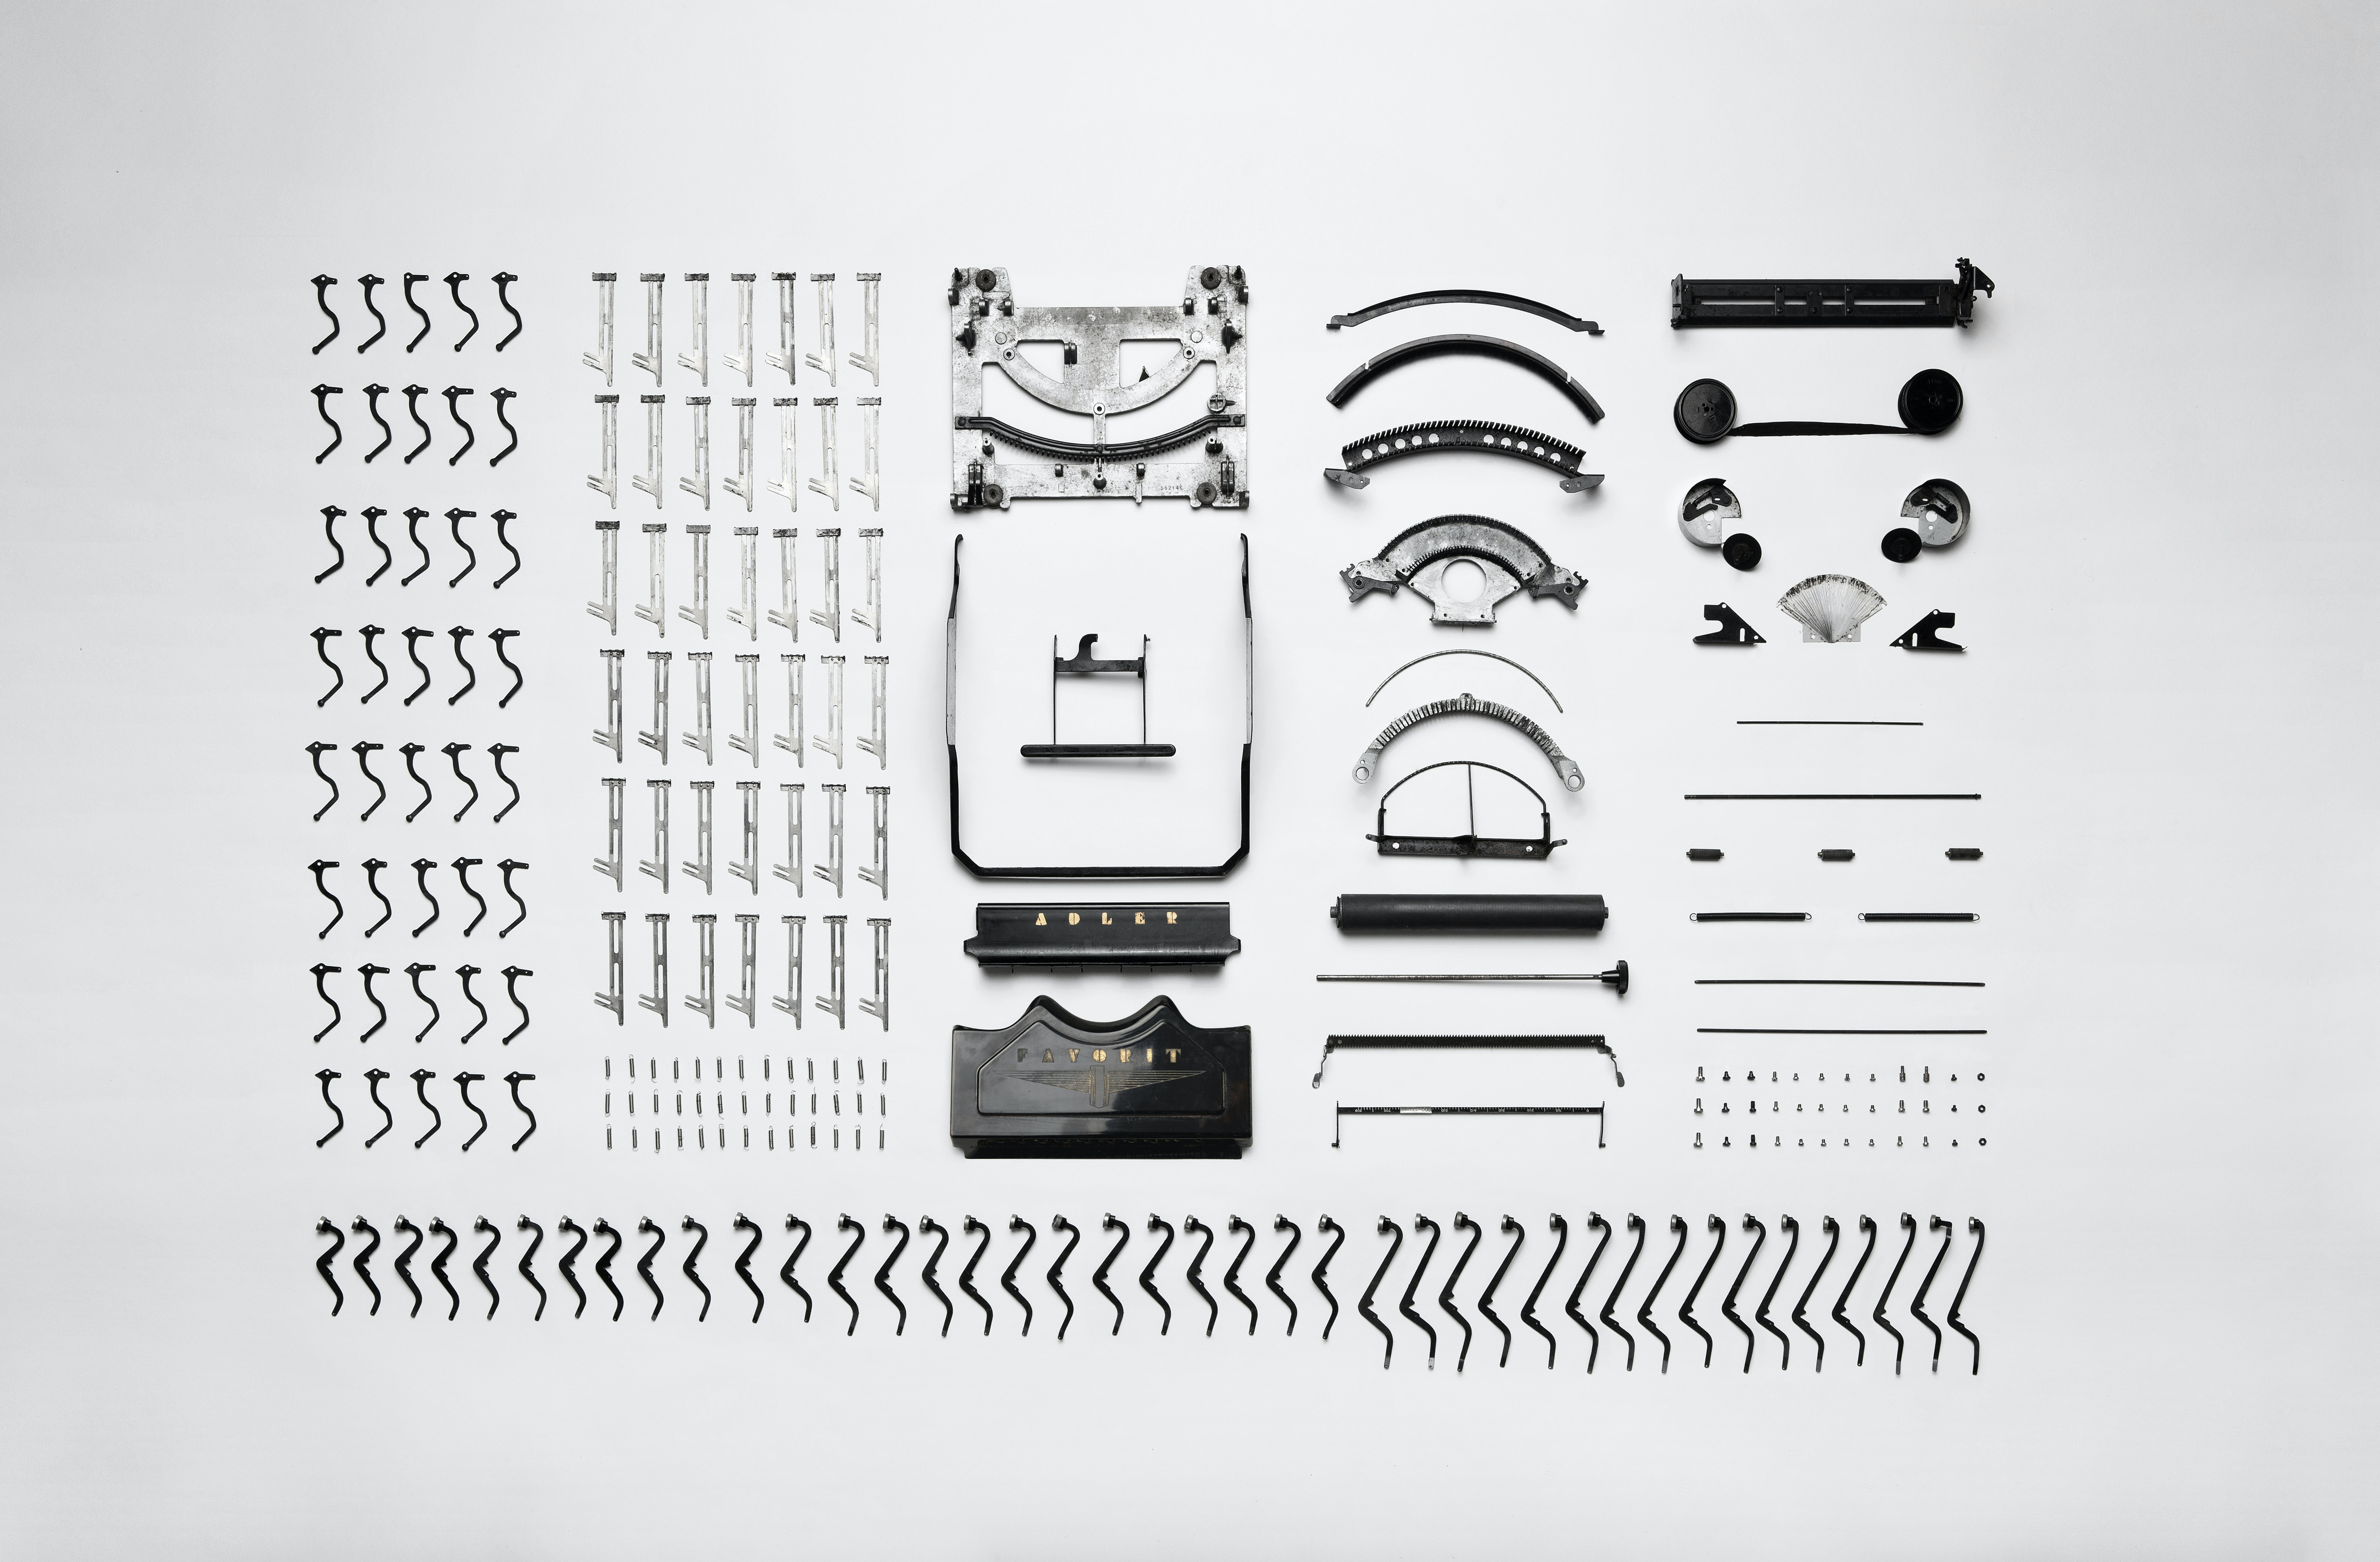 Flat lay photography of the parts of a vintage Adler typewriter.